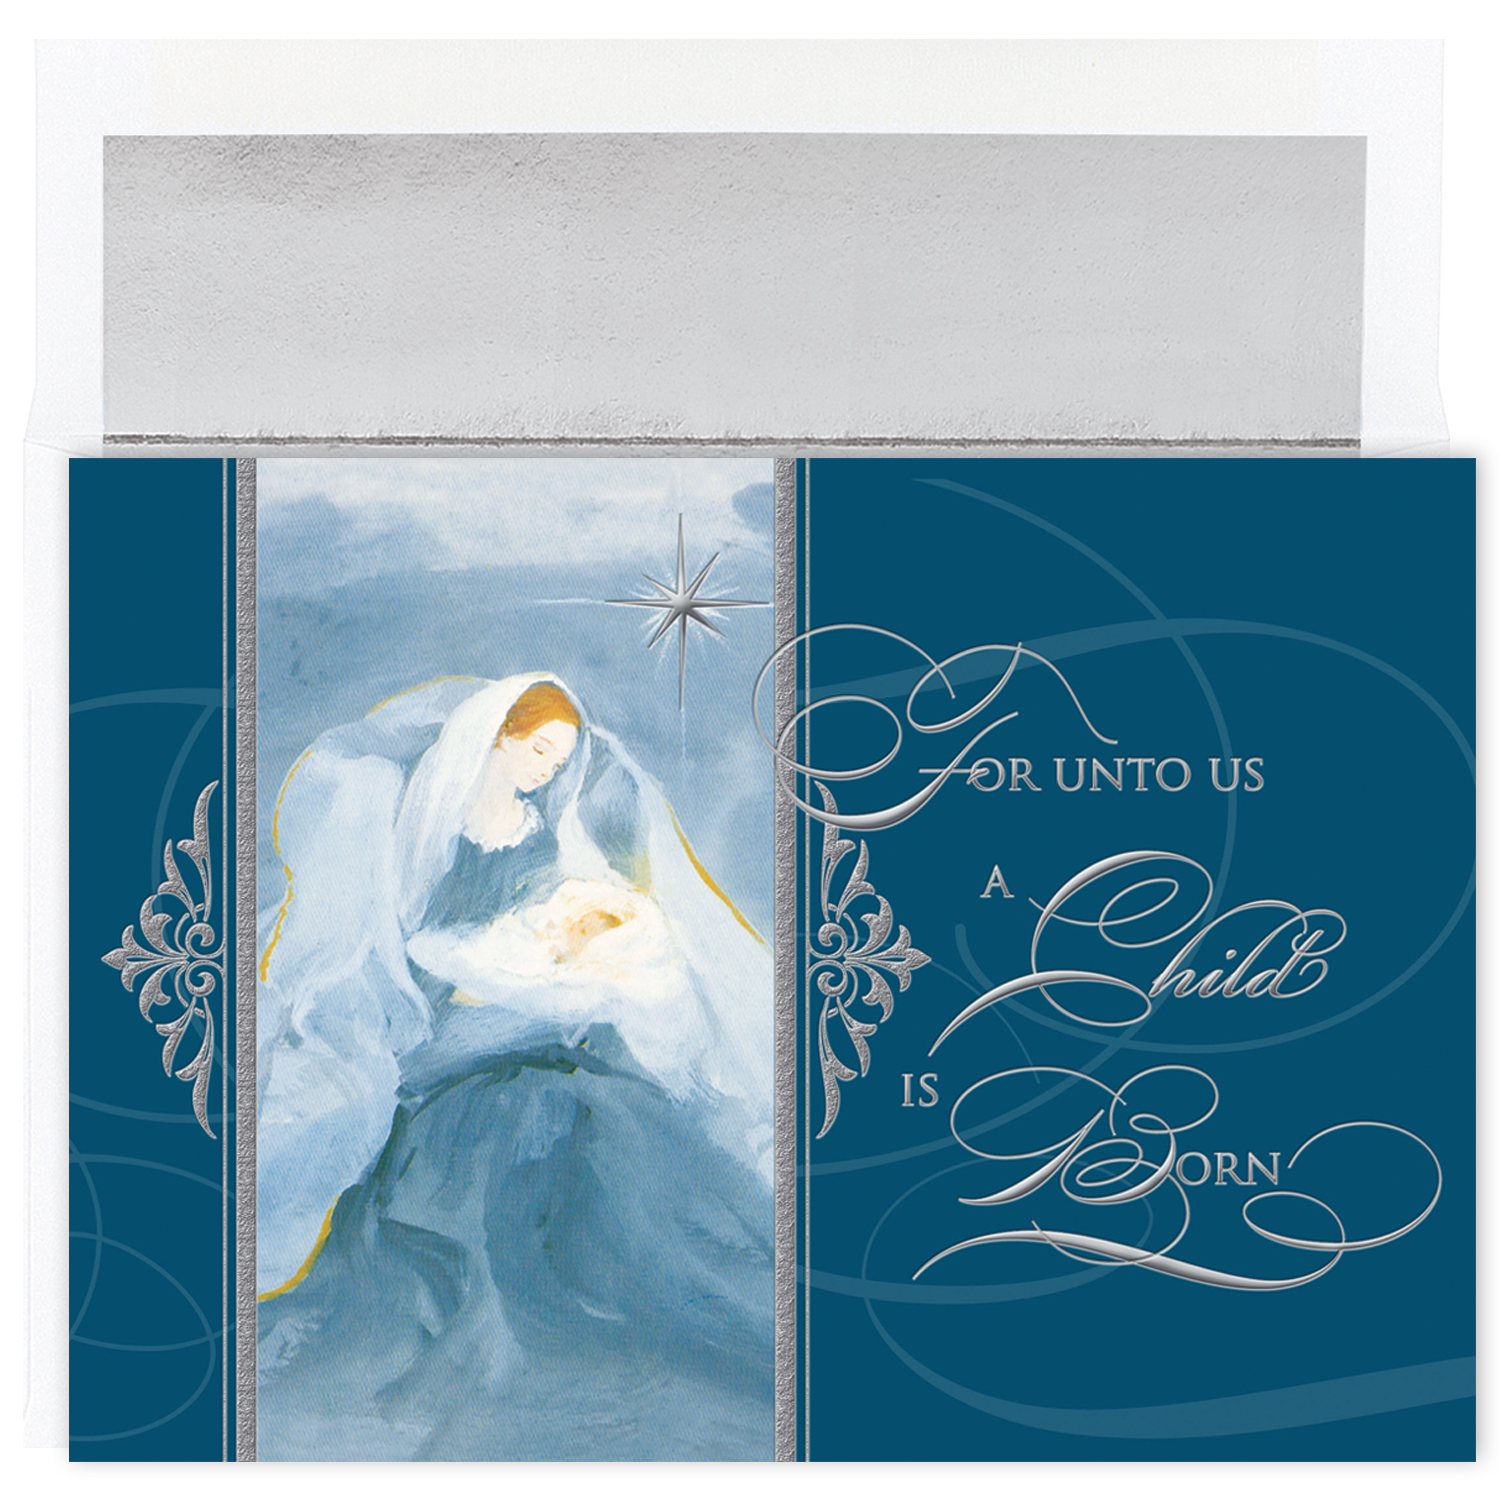 Foil stamped christmas cards 1 inside sentiment may his coming bring you peace and blessings this christmas m4hsunfo